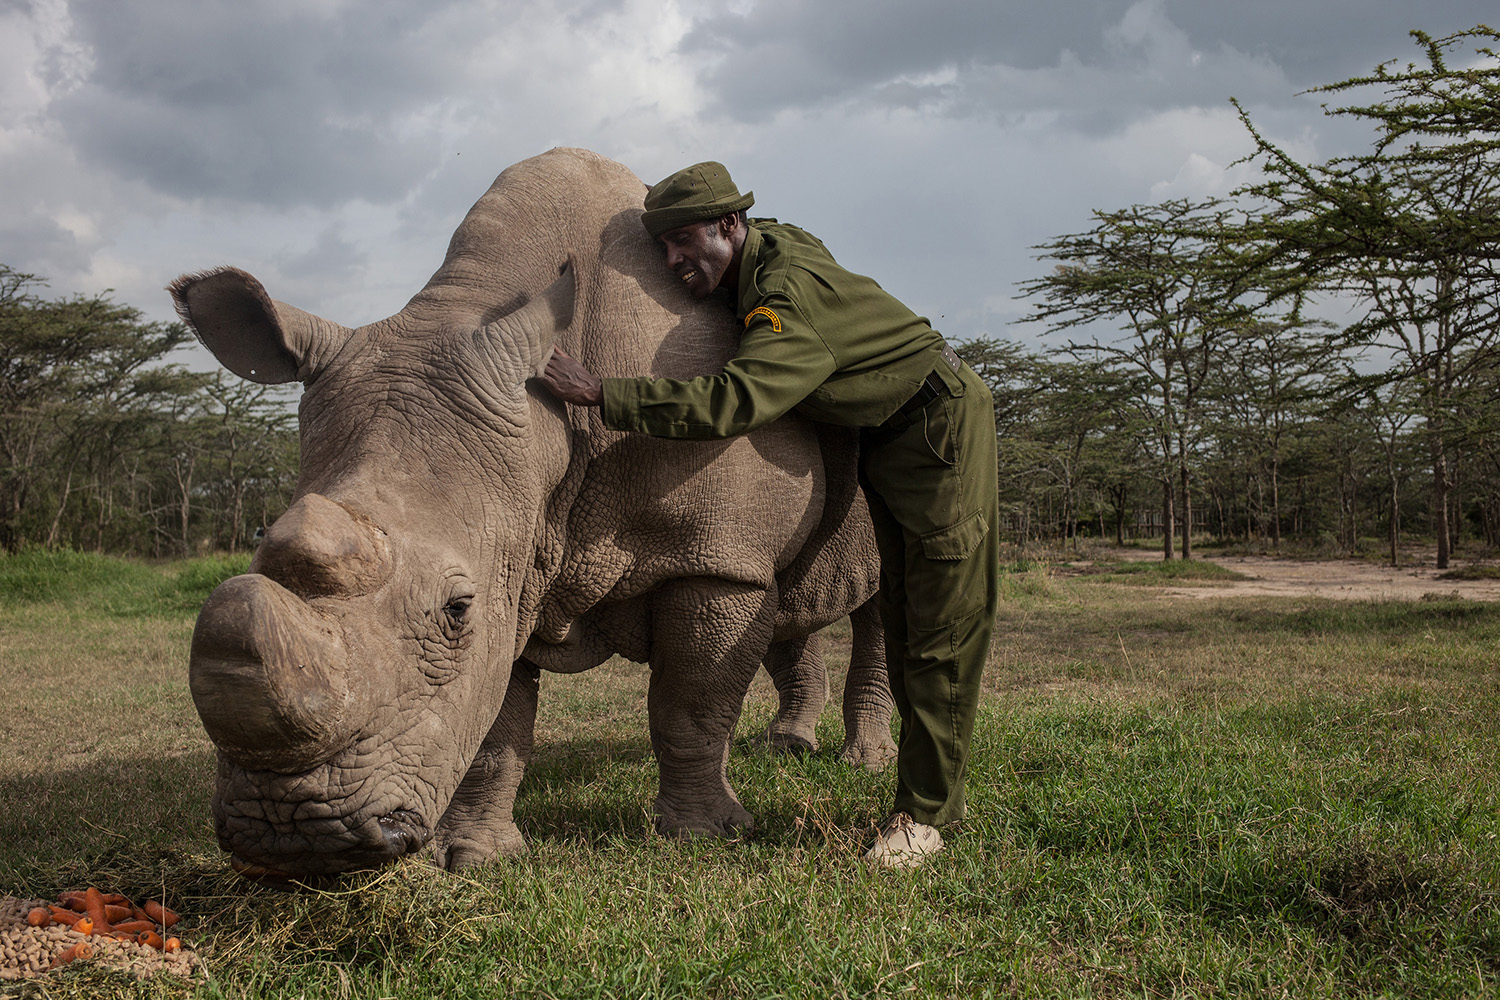 Kenya - Almost the end for Kenya's northern white rhino